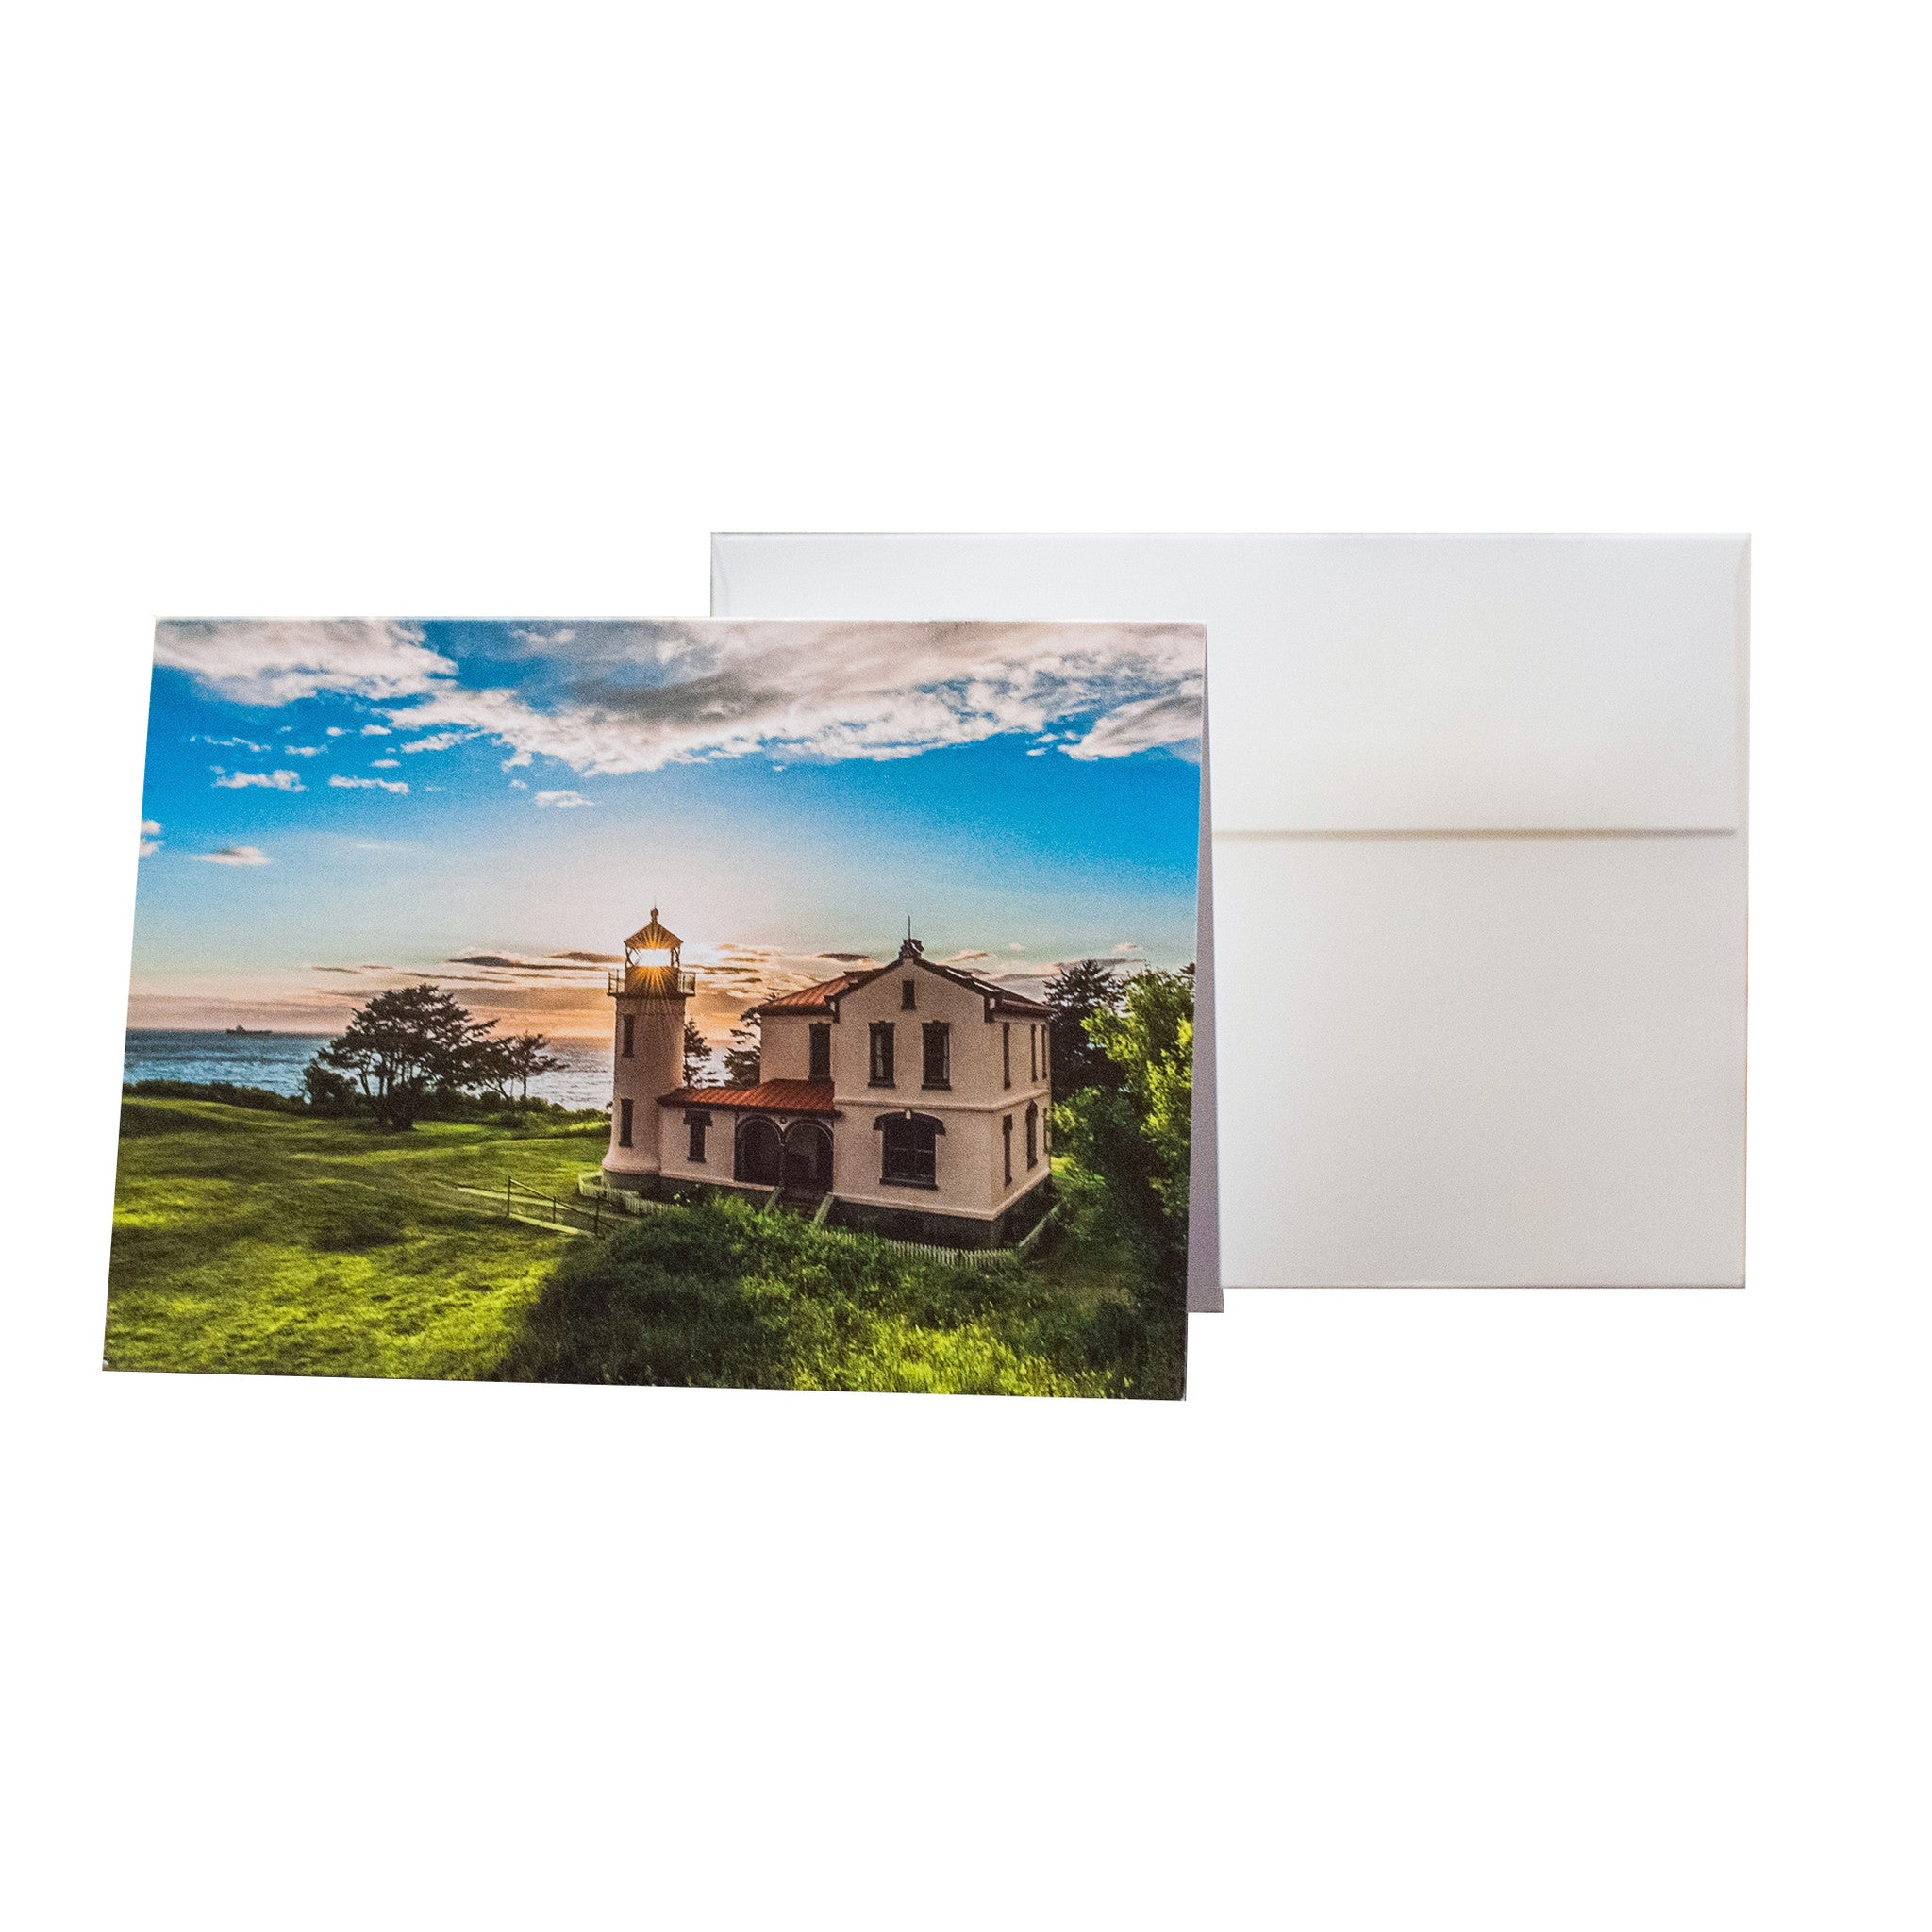 The Sun Sets Through a Decommissioned Lighthouse - 5 x 7 Notecard w/ Envelope - FREE SHIPPING